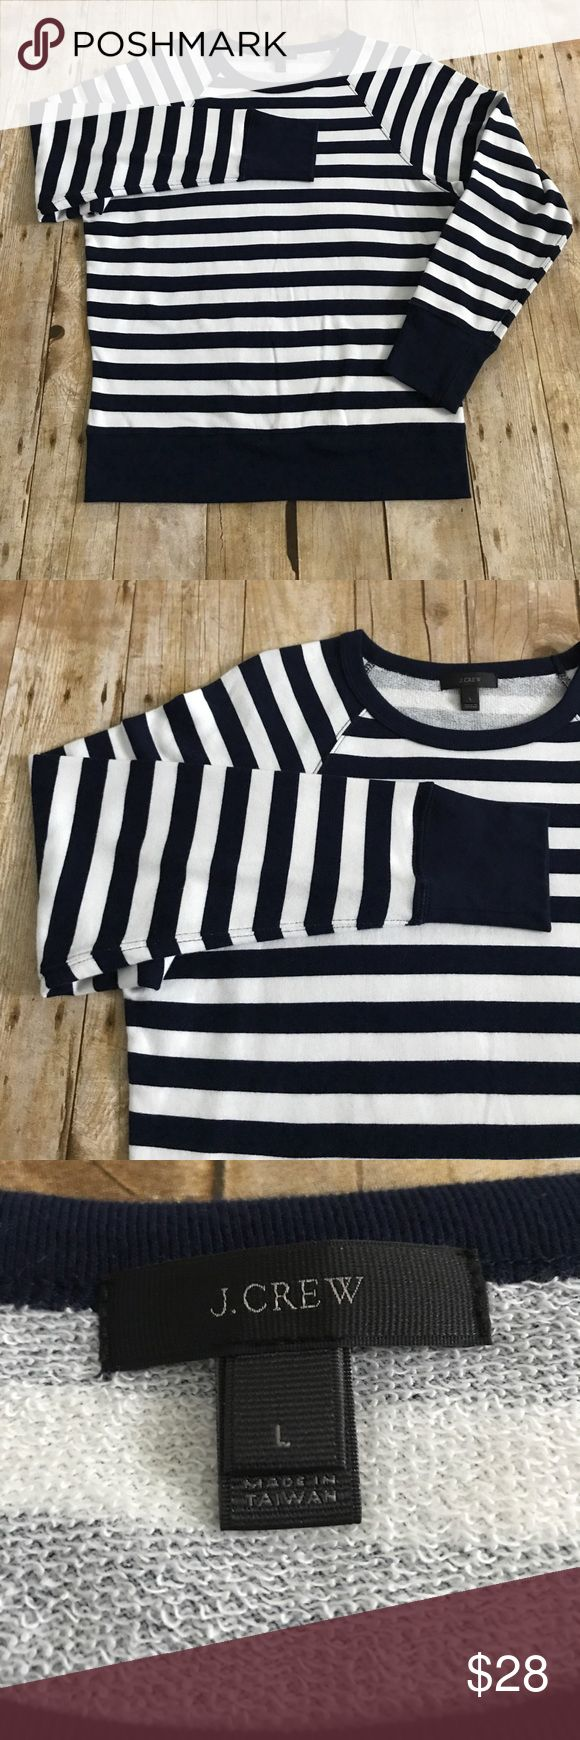 J. Crew French Terry Striped Sweatshirt NWOT. J. Crew French Terry Striped Sweatshirt. Navy blue and white stripes with navy blue cuffs, hem and collar. Super soft and cozy! 100% cotton. Size Large. From a smoke free home. J. Crew Tops Sweatshirts & Hoodies